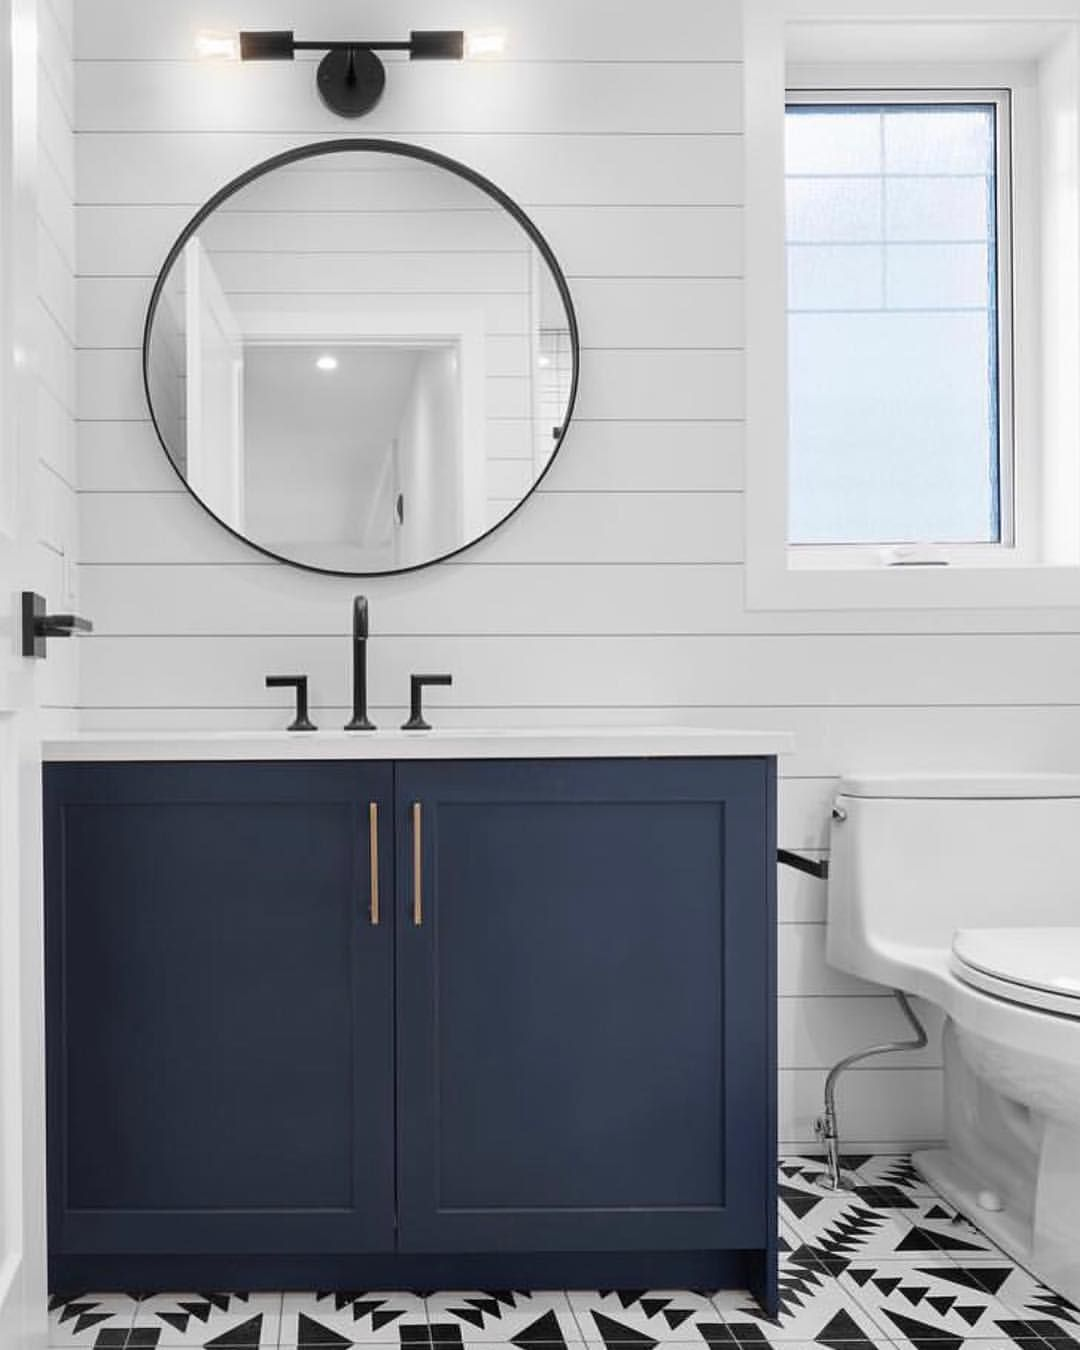 Beautifully Graphic Design By Hyunbiagi Remax Including Our Venus Sconce In Matte Black Faucet By Round Mirror Bathroom Blue Bathroom Vanity Small Bathroom [ 1350 x 1080 Pixel ]